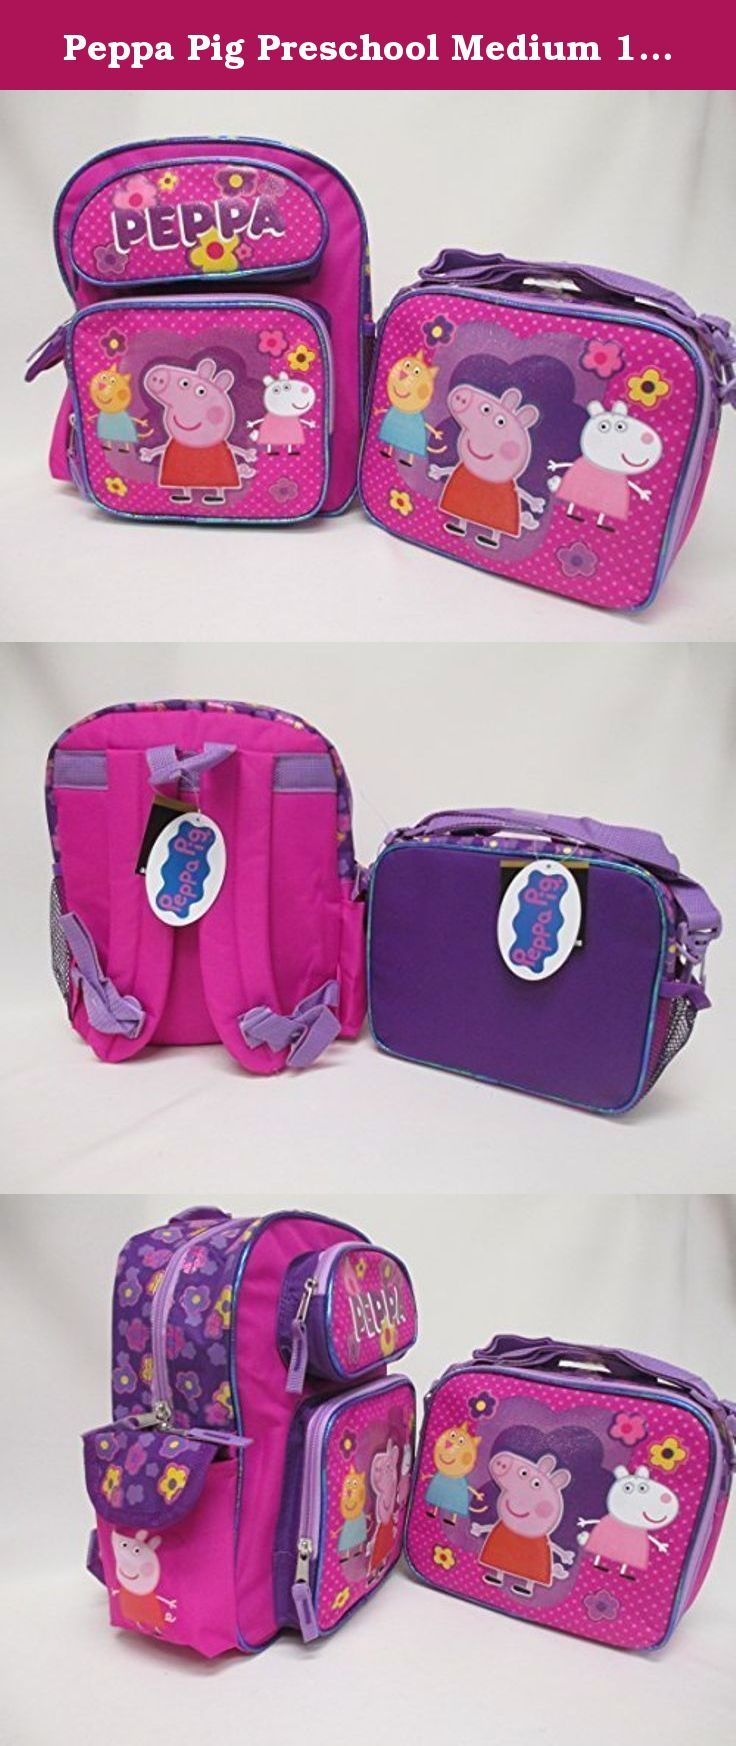 """Peppa Pig Preschool Medium 12"""" Backpack & Lunch Box Set. Peppa Pig Backpack Set!. Backpack. Lunchbox. THIS BACKPACK IS FOR 3 YEARS OLD & UNDER!!. This Complete Set is offered by Seller Bag2School."""